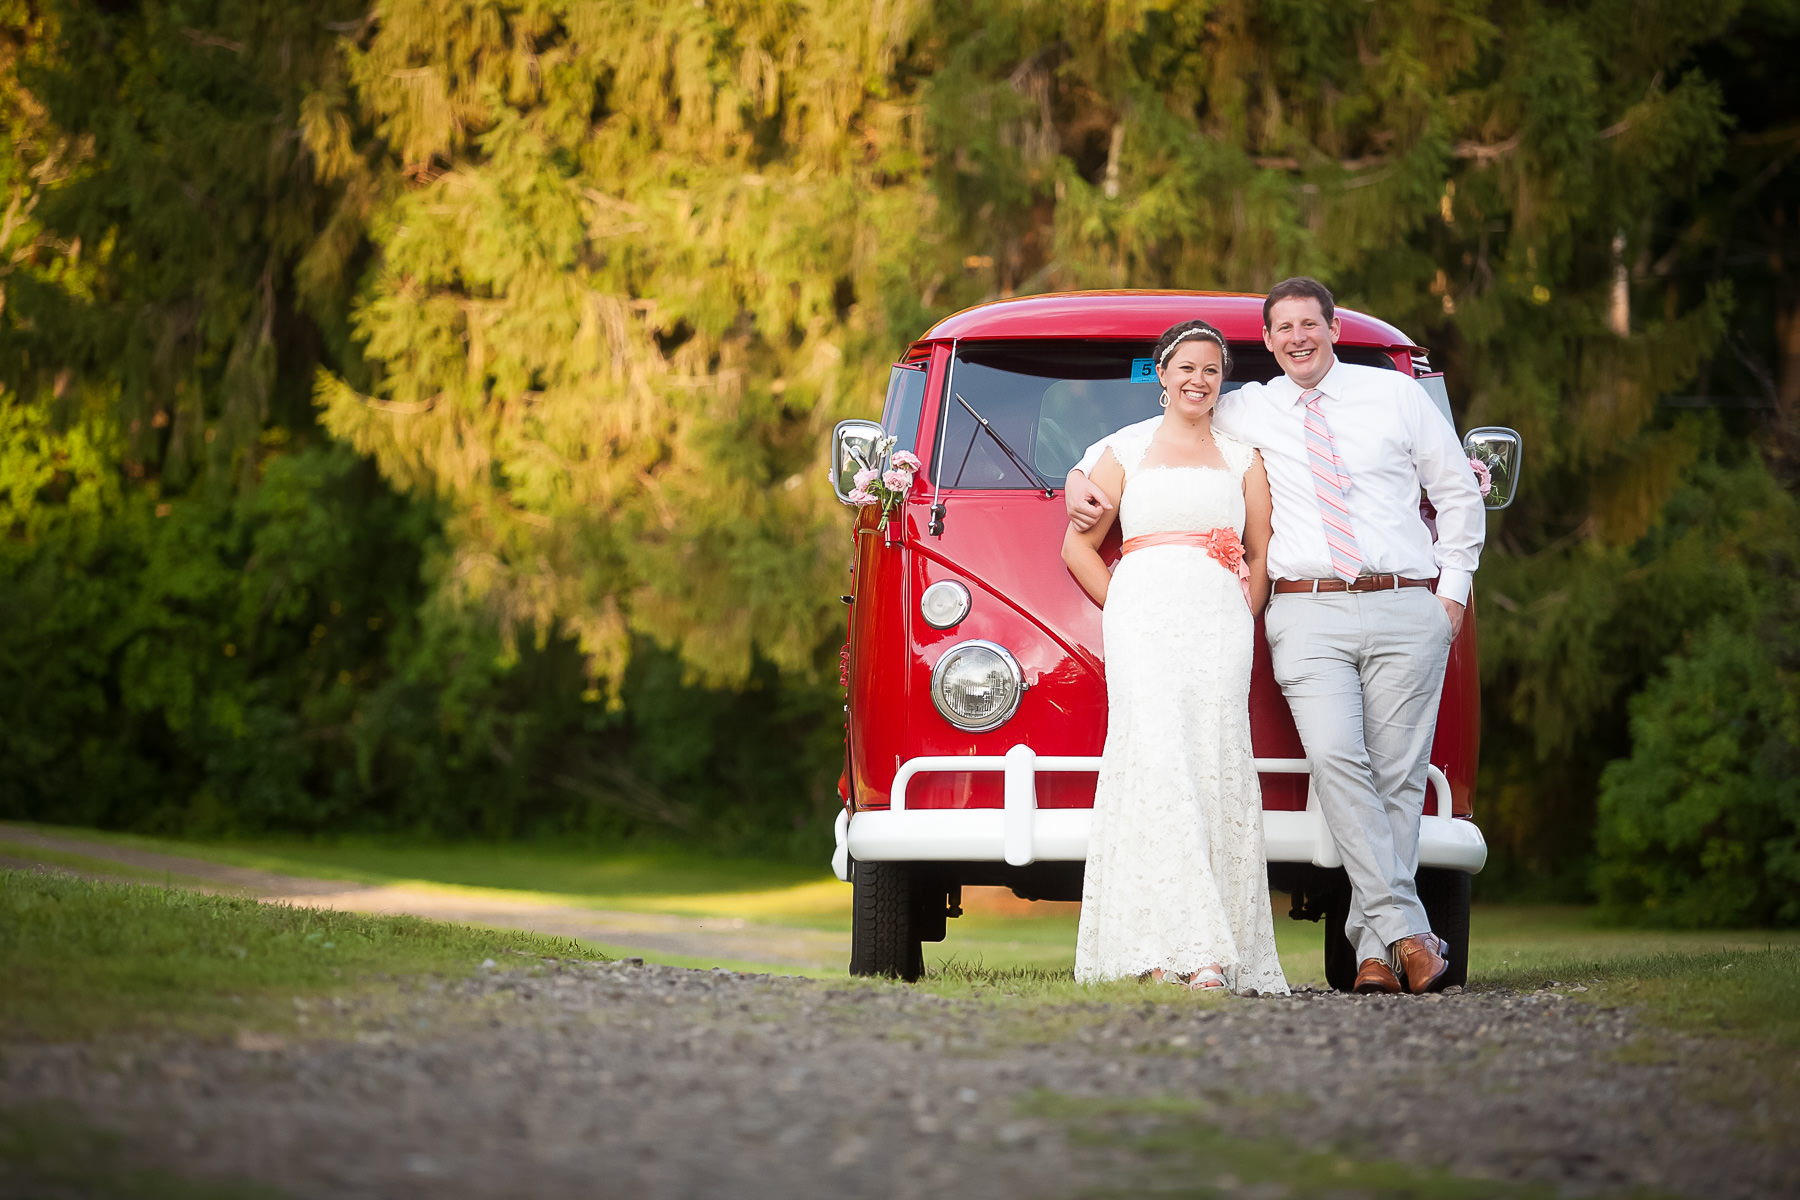 Bride and groom stand in front of an antique volkswagon bus,